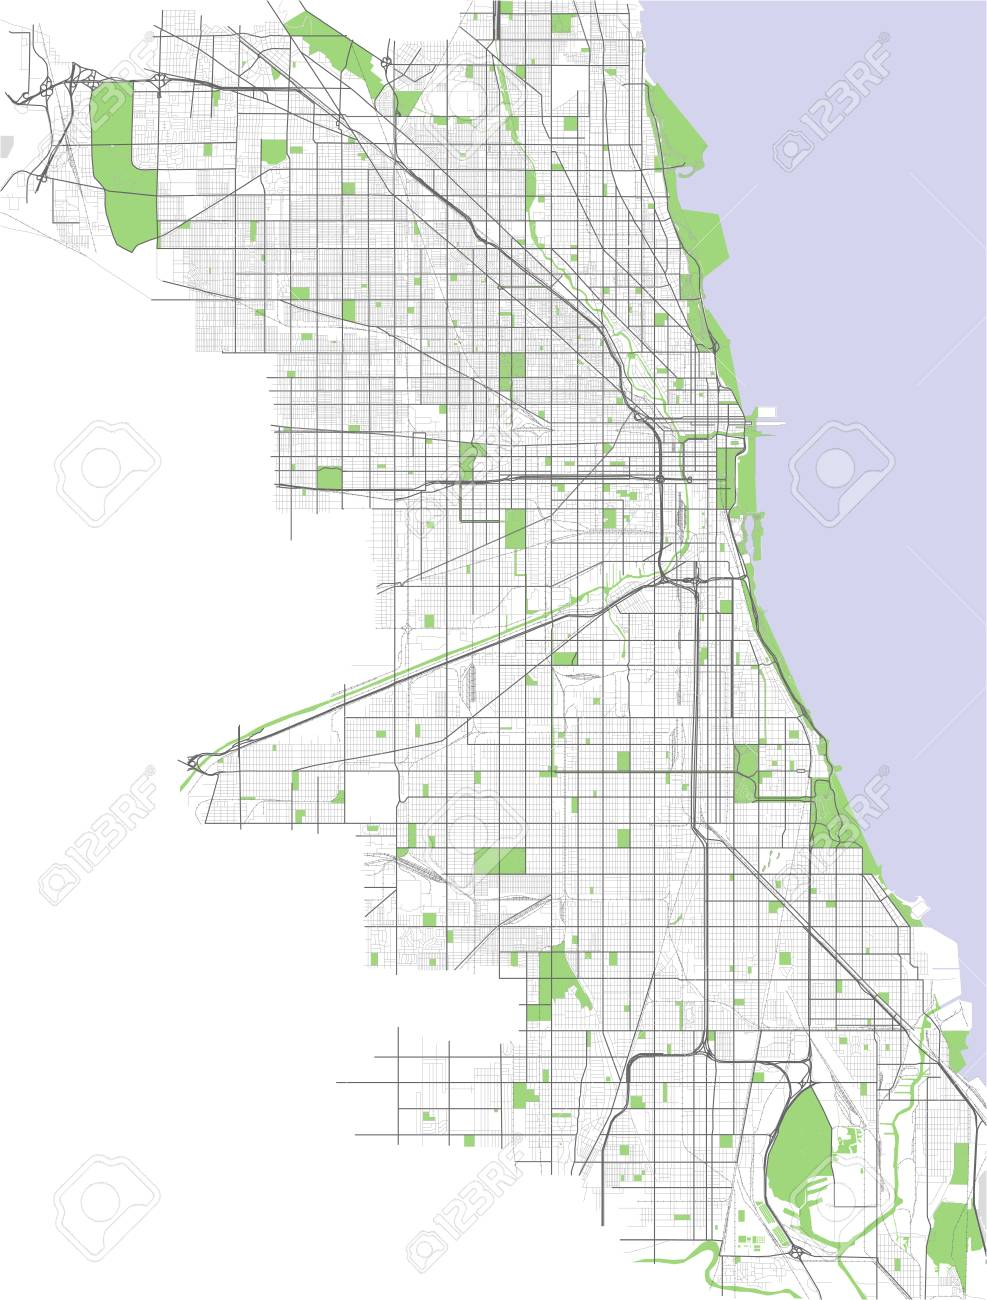 Map of the city of Chicago, USA Chicago Map In Usa on puerto rico in chicago, money in chicago, bike in chicago, ball in chicago, weather in chicago, usa map in miami, statue of liberty in chicago, animals in chicago, butterflies in chicago, transportation in chicago, nebraska in chicago, home in chicago, turkey in chicago, zip code map in chicago,